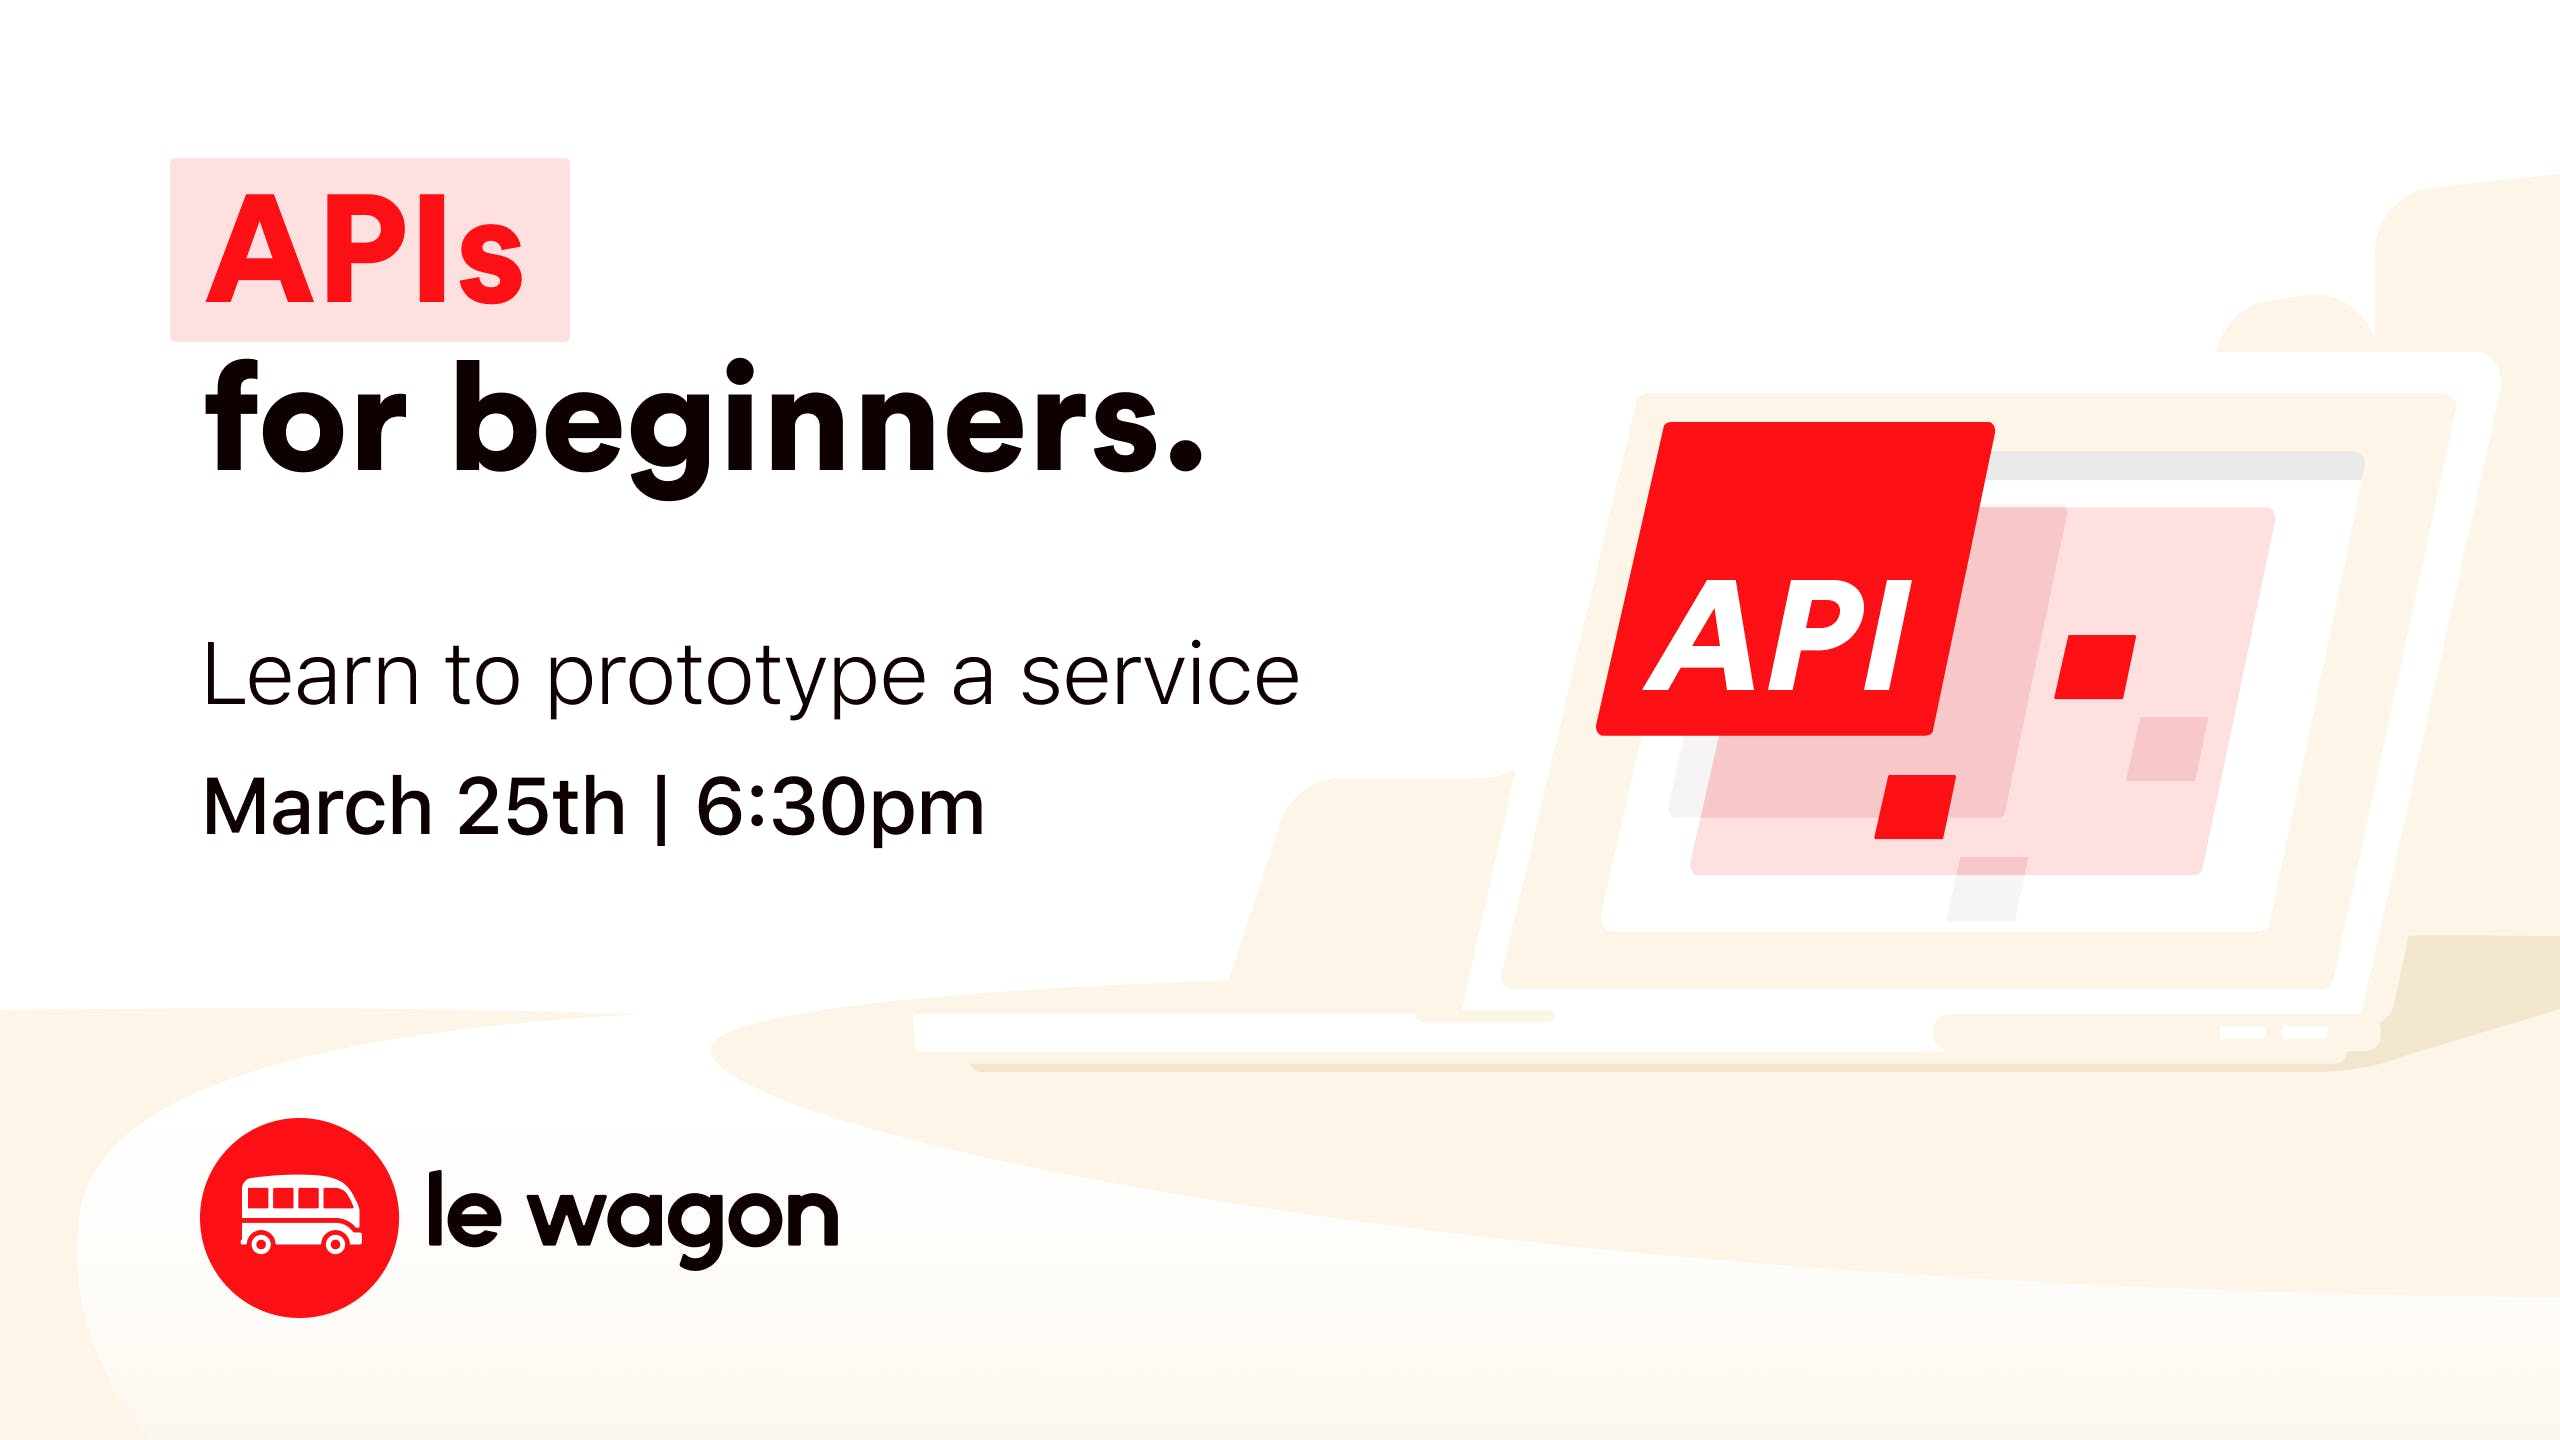 APIs for Beginners - Le Wagon workshop